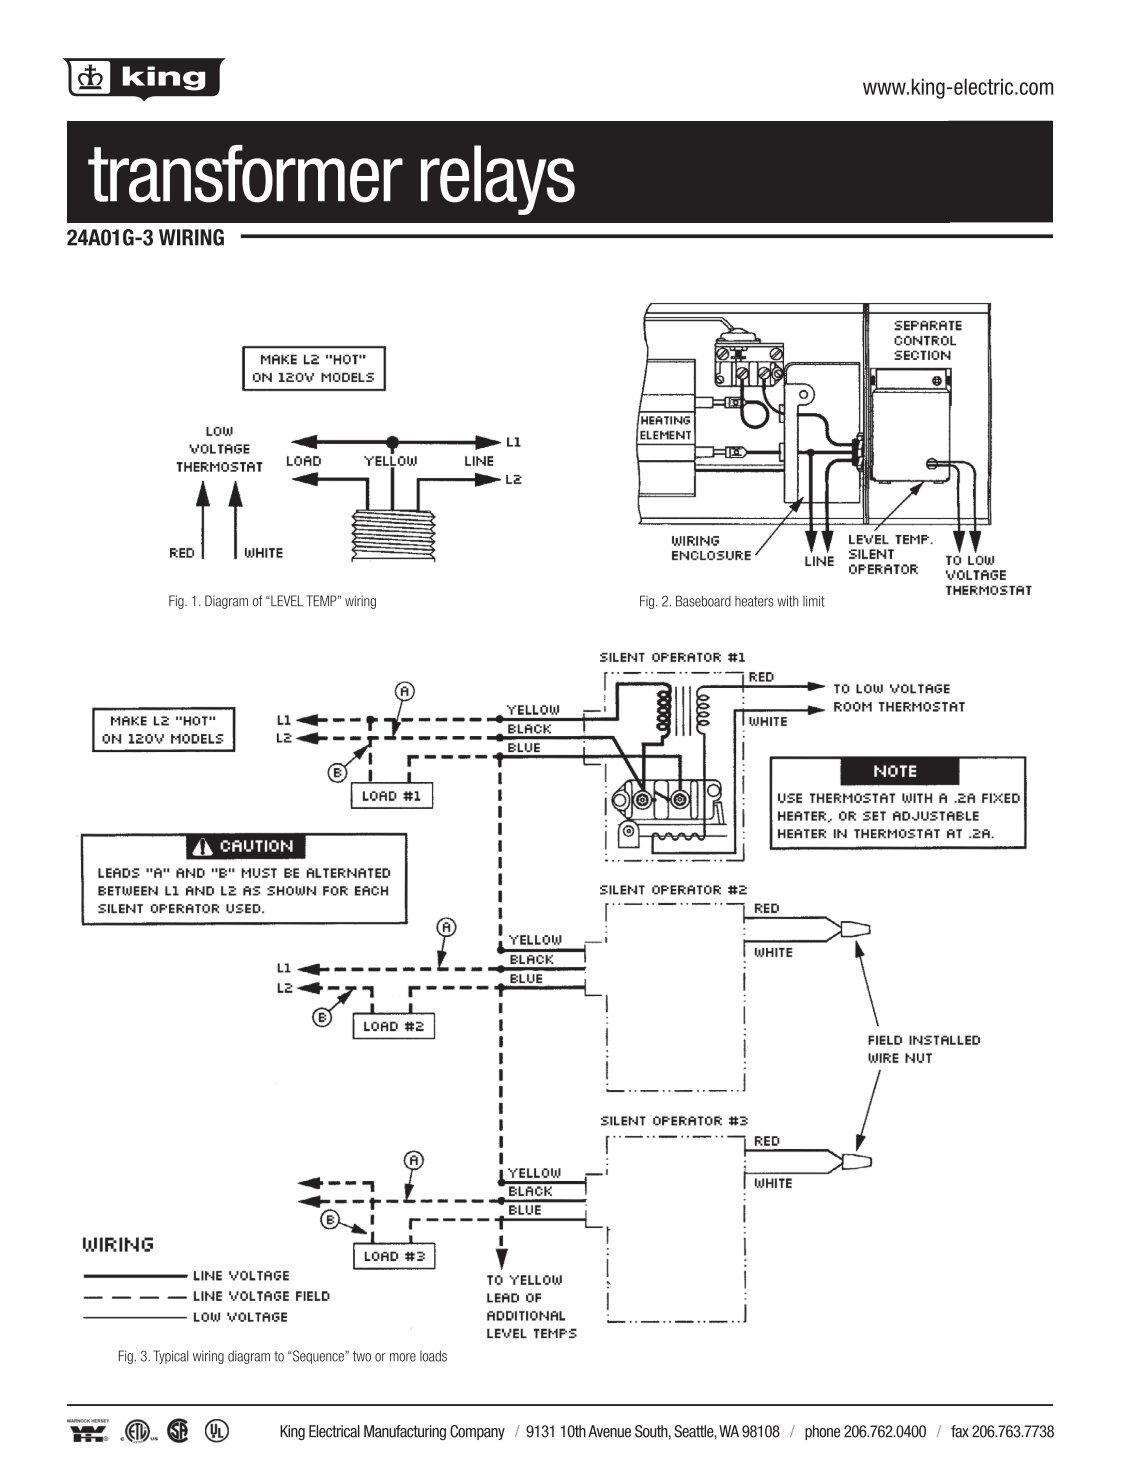 holz her 1302 electrical wiring diagram